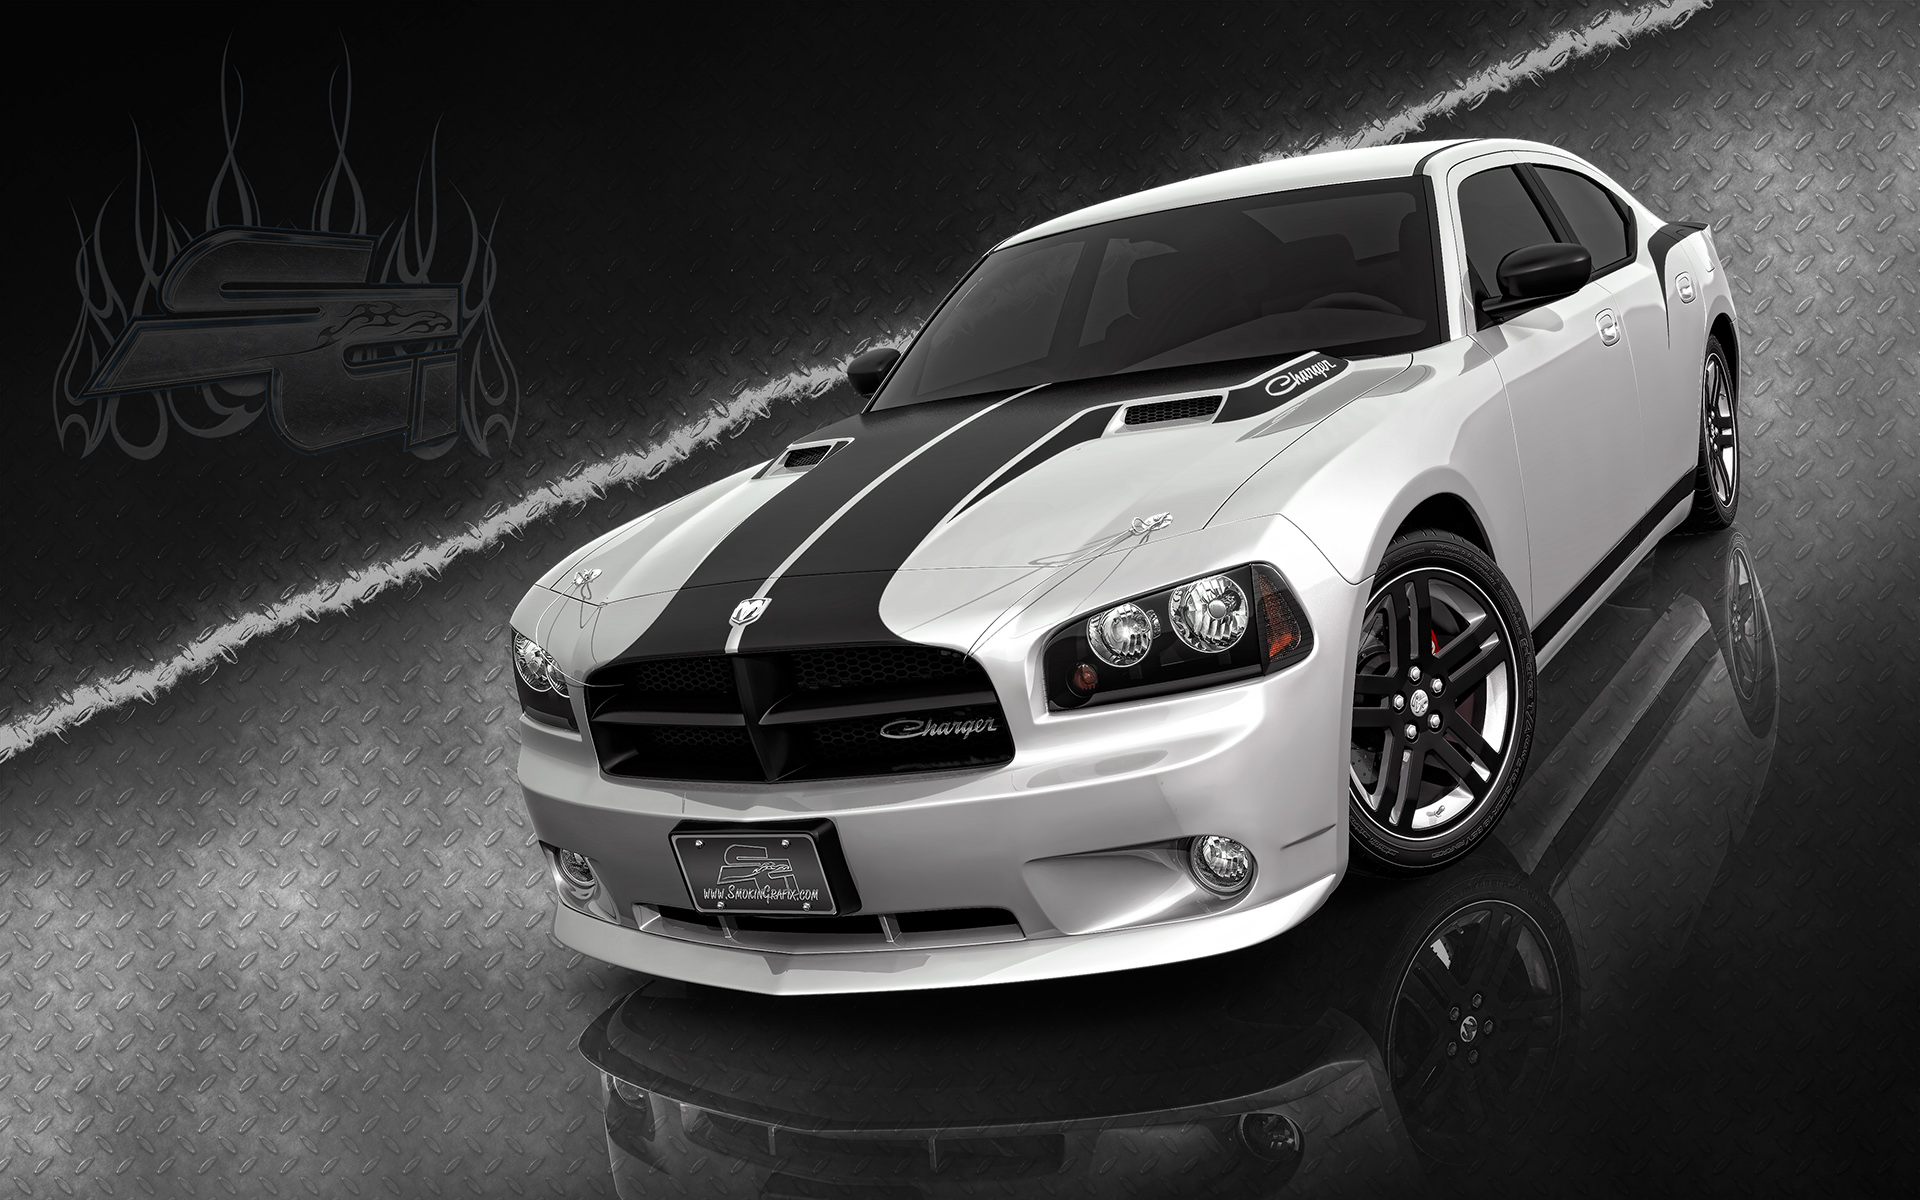 Tuned Dodge Charger in the sports color, the picture